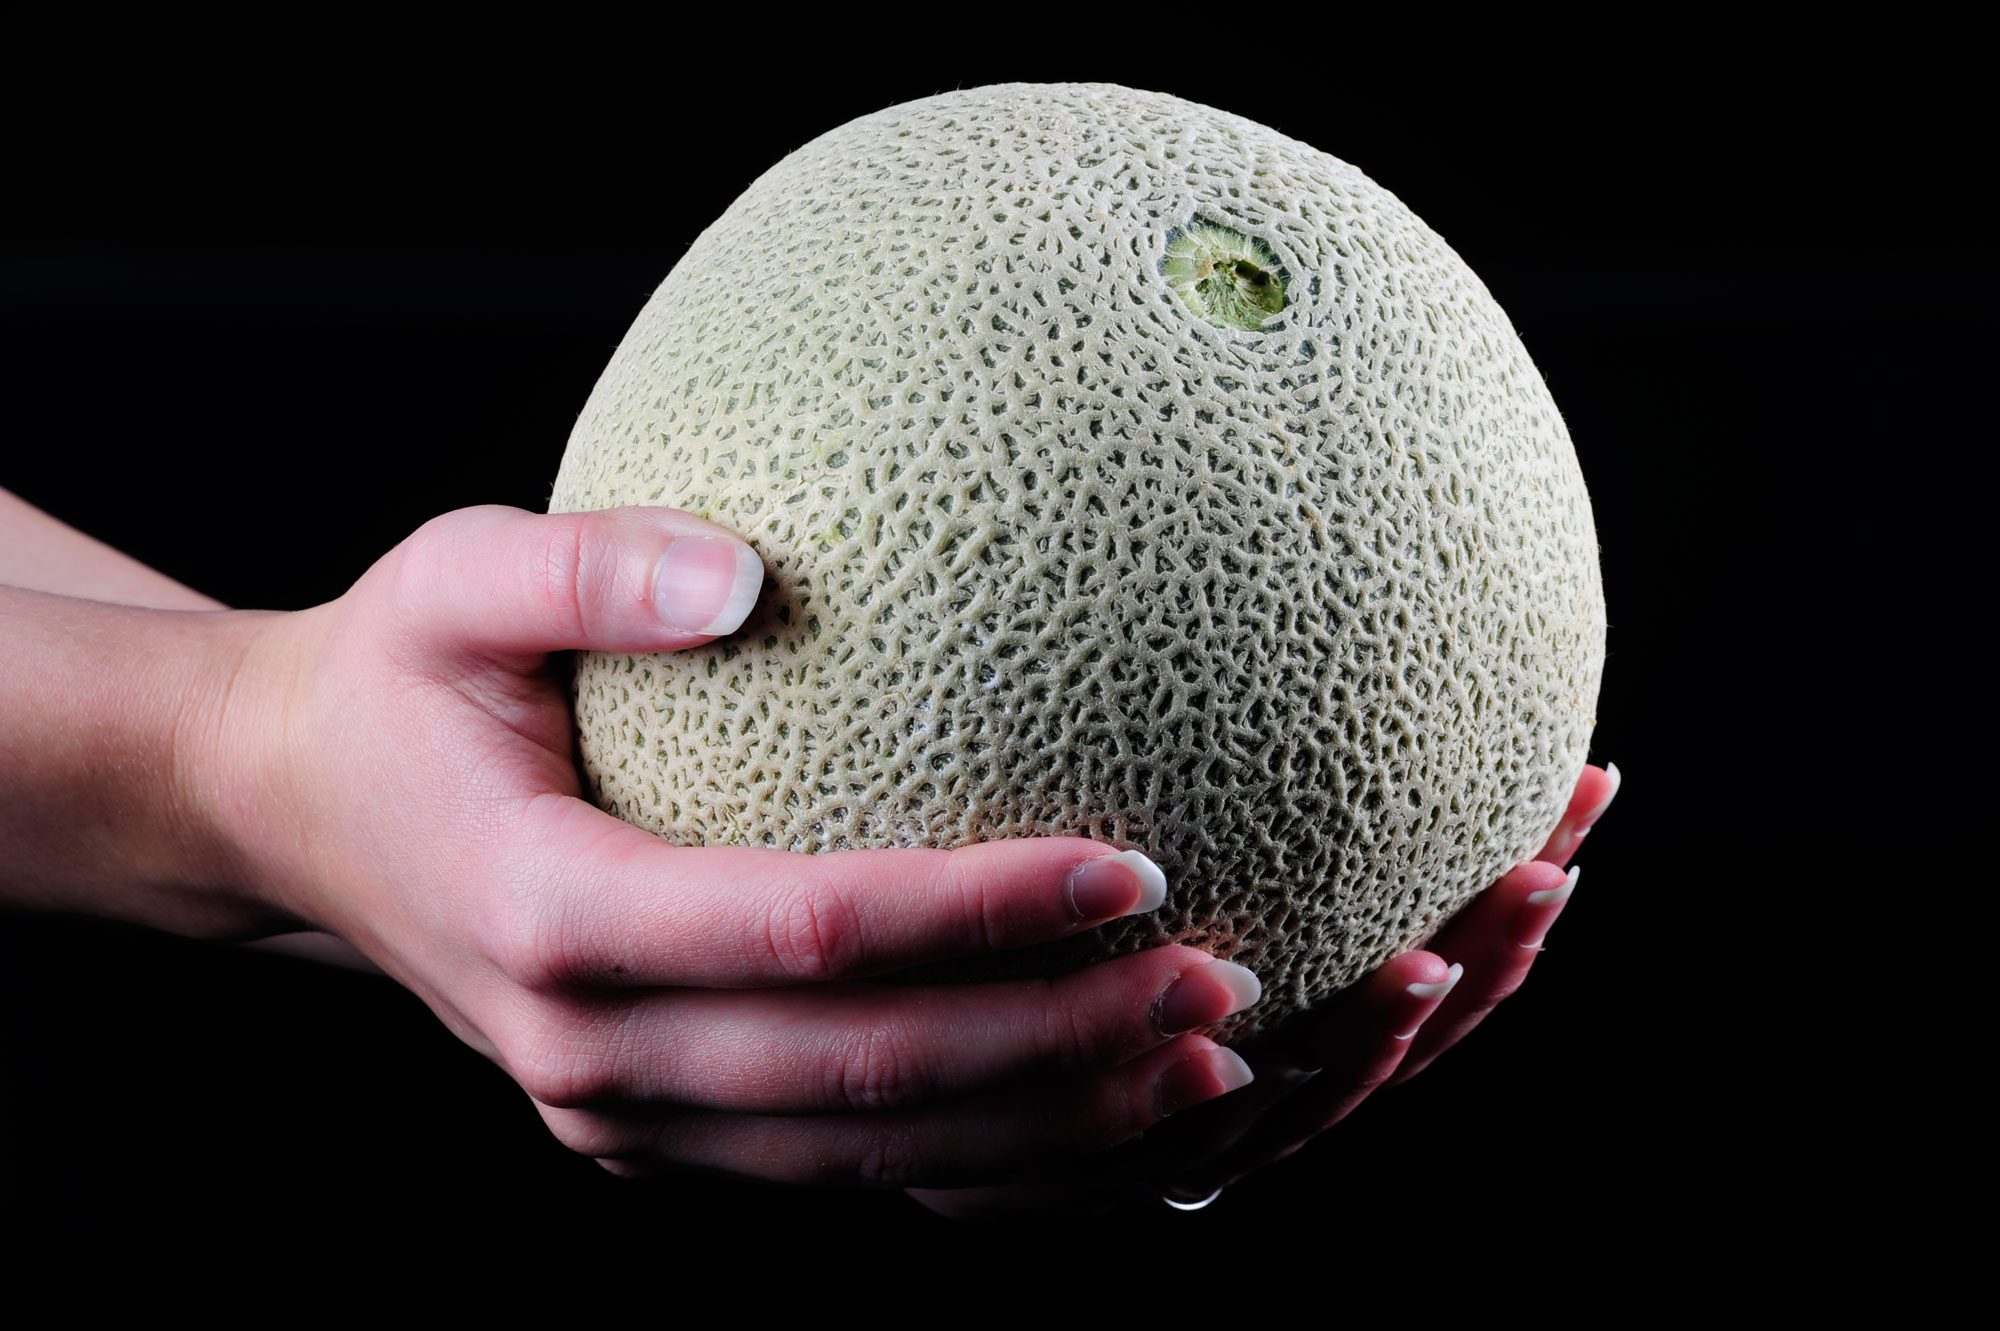 cantaloupe in hand